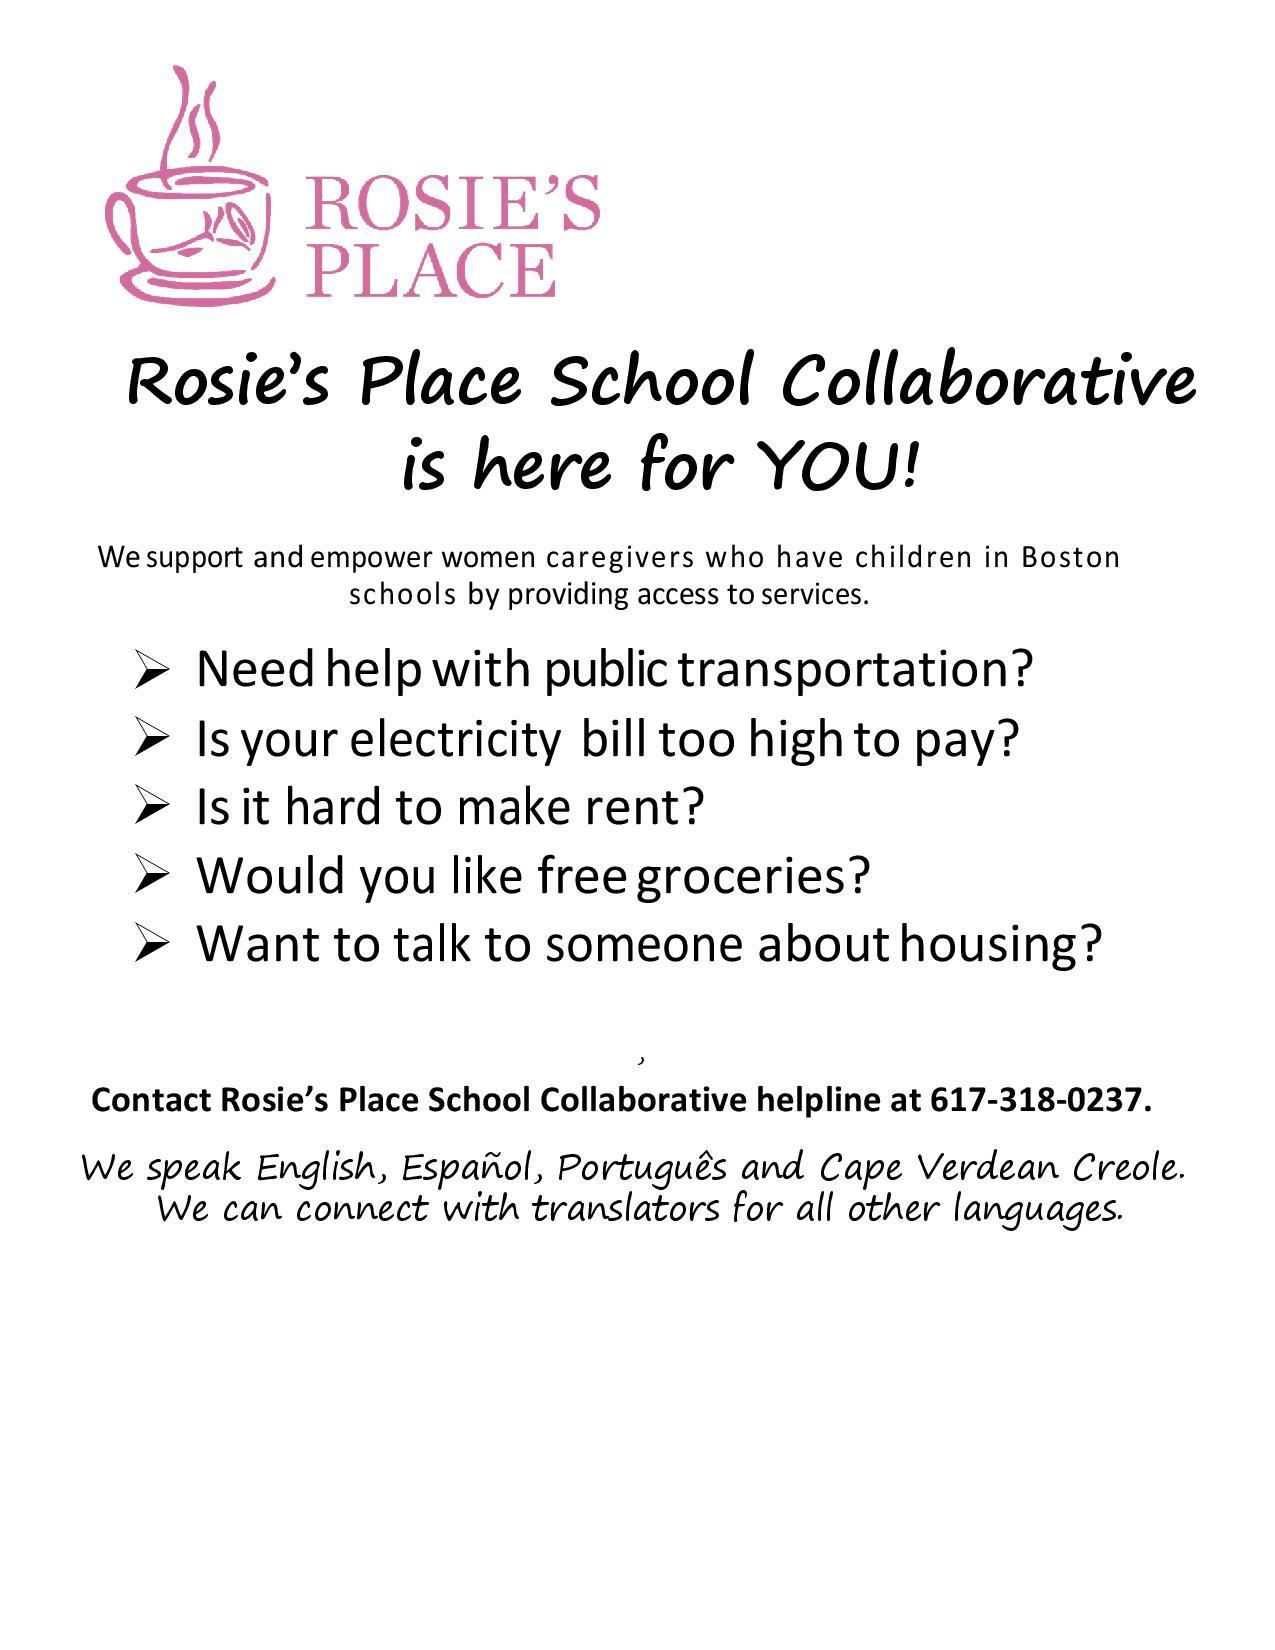 Rosie's Place School Collaborative 1